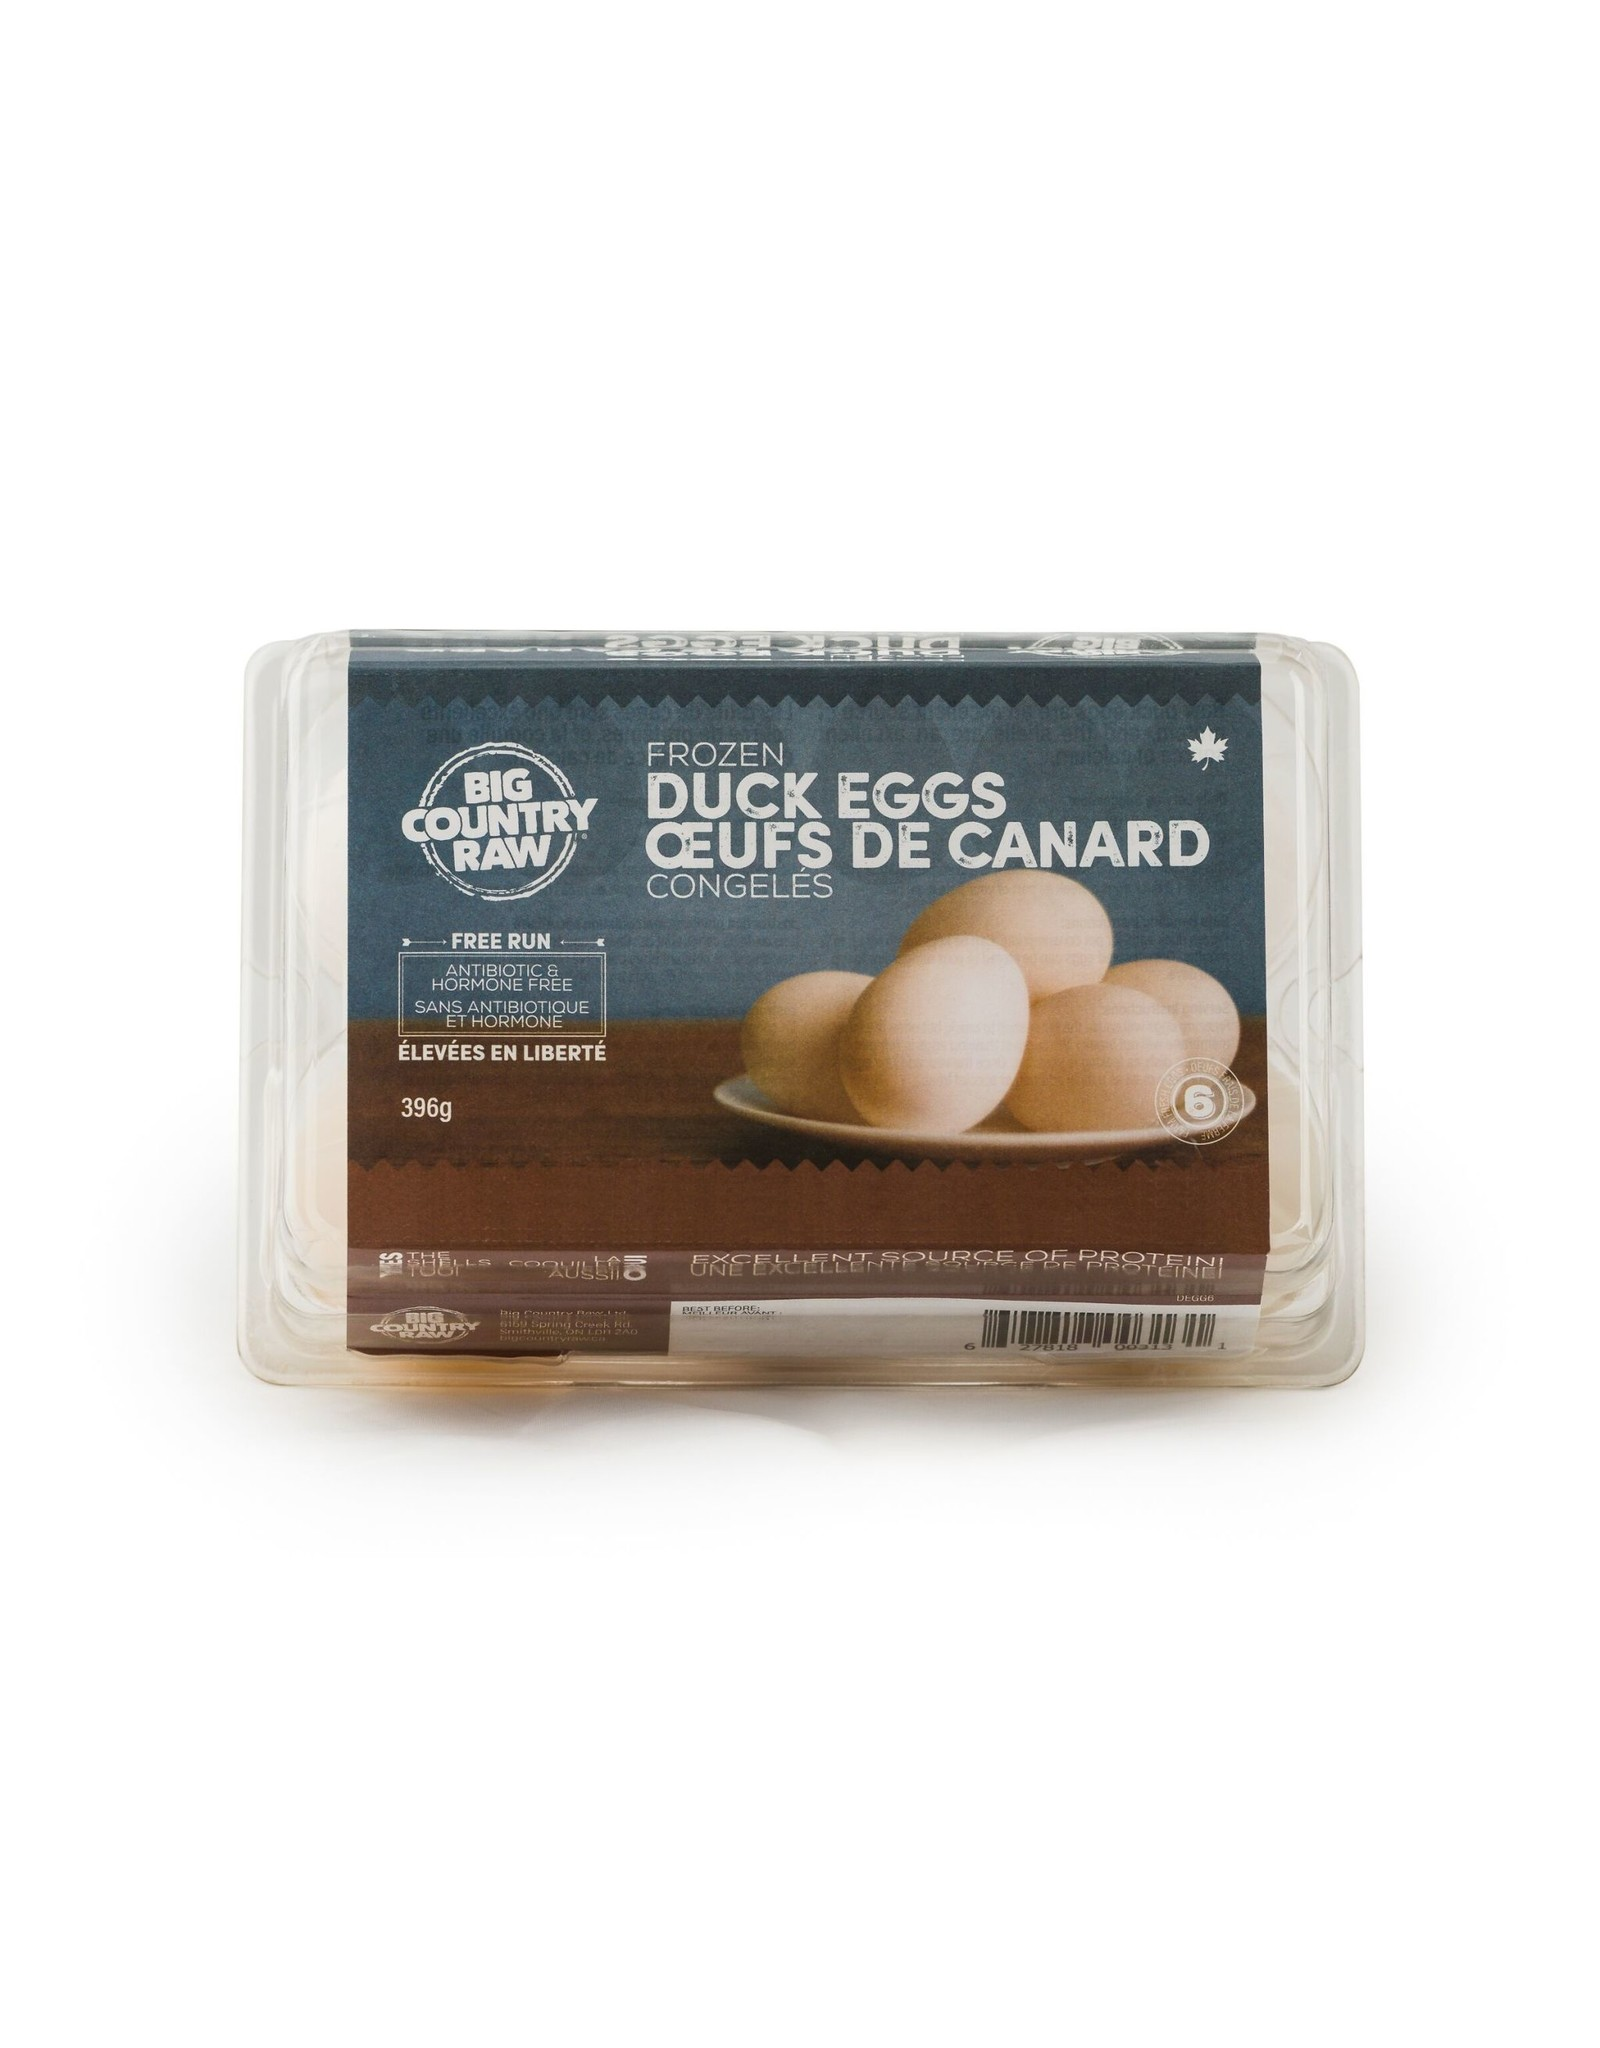 Big Country Raw Frozen Duck Eggs 6ct